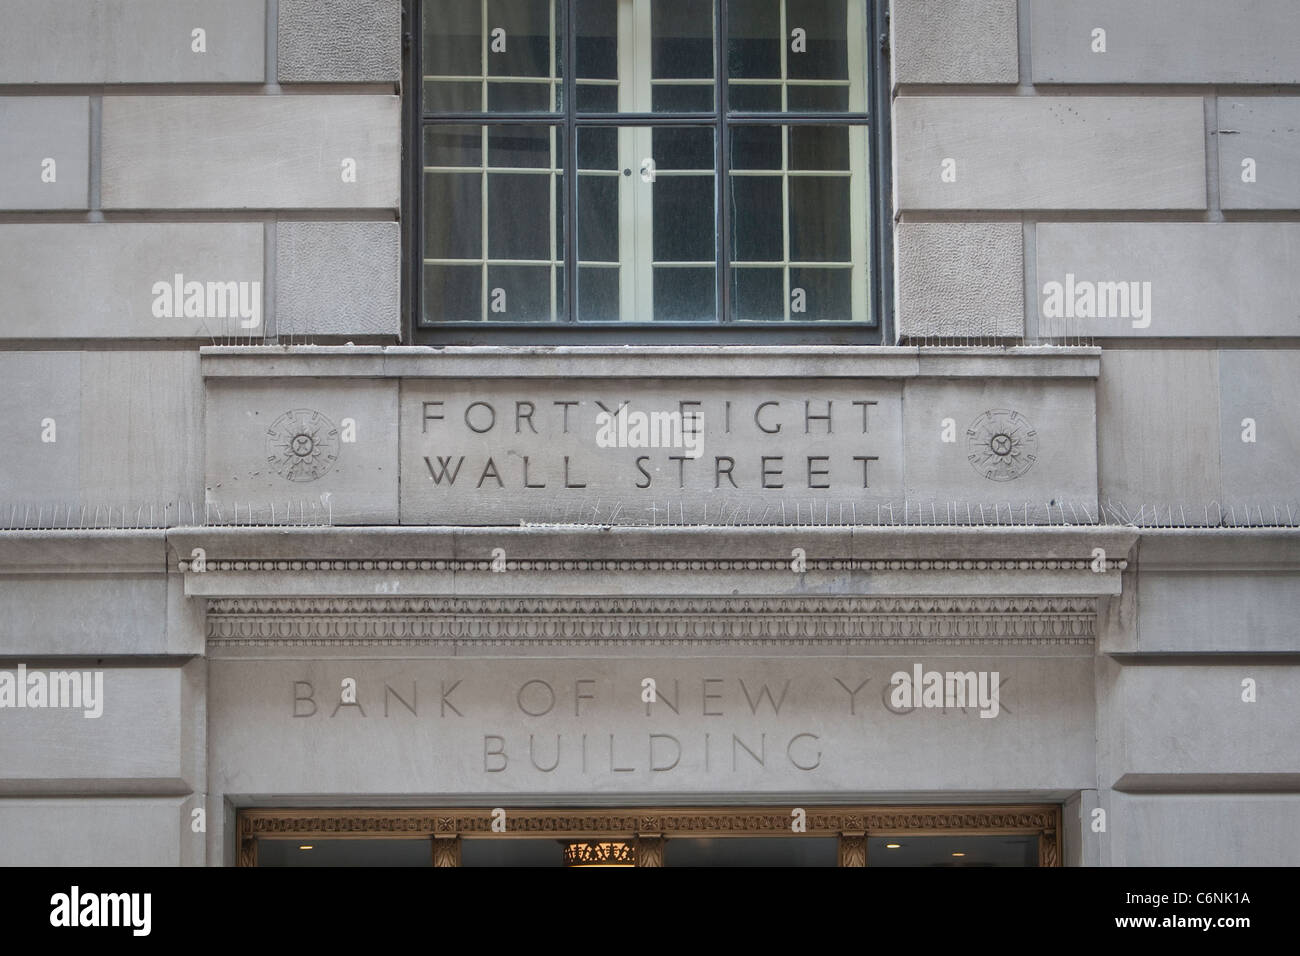 48 Wall Street building is pictured in New York, NY, Thursday August 4, 2011. Stock Photo